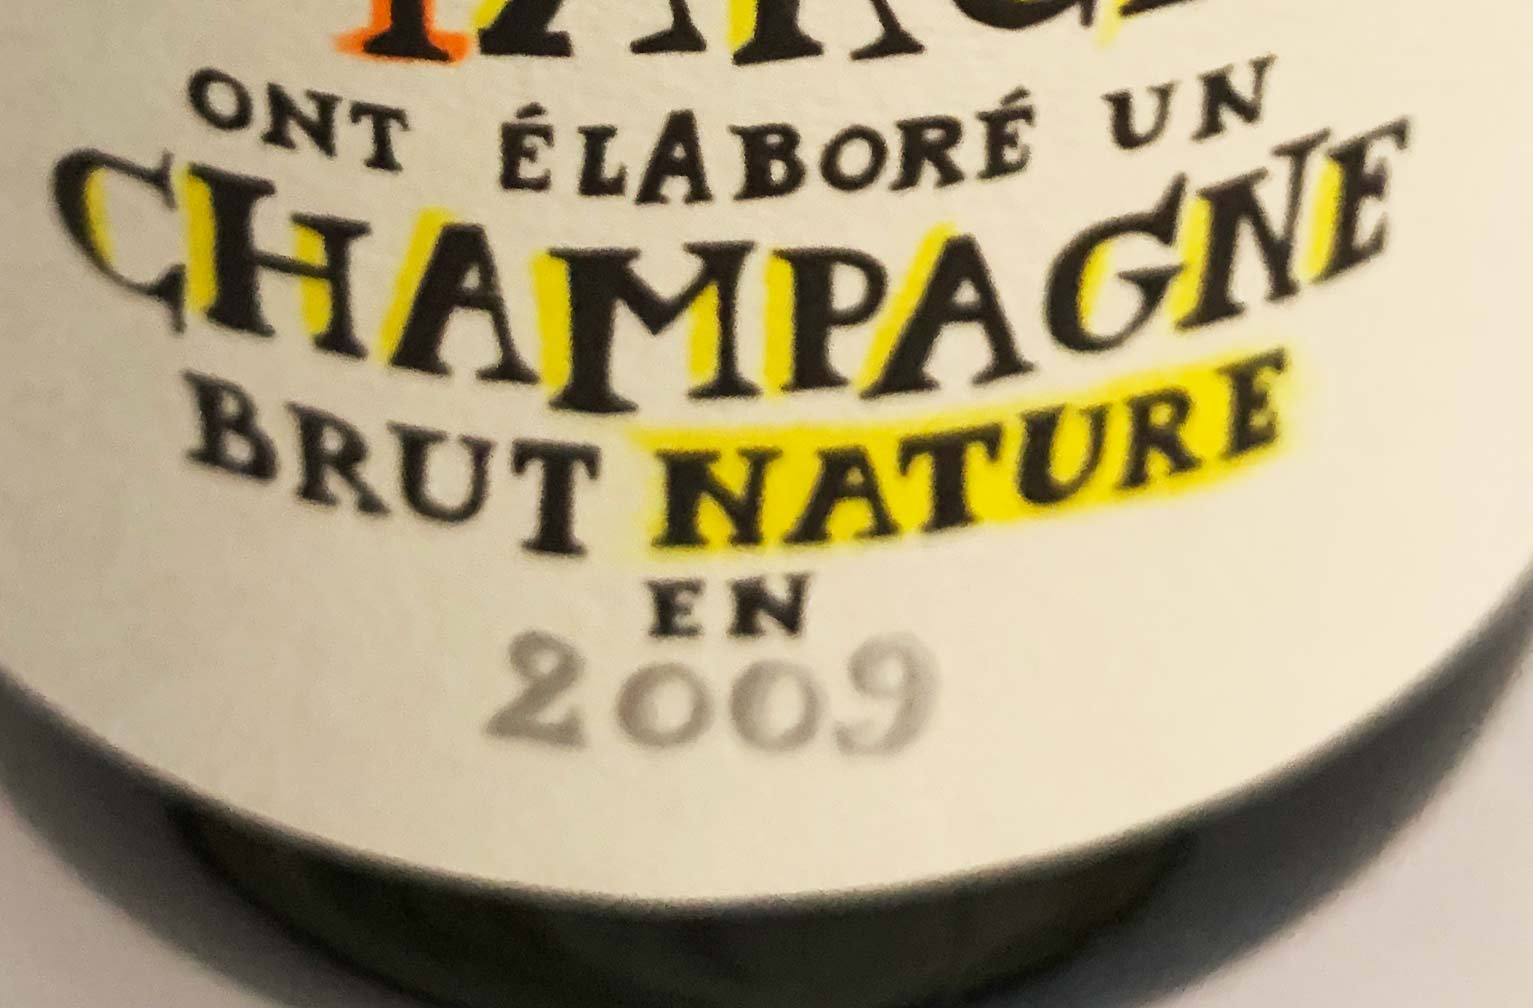 Zero Dosage Champagnes: Are they better? Why choose them?